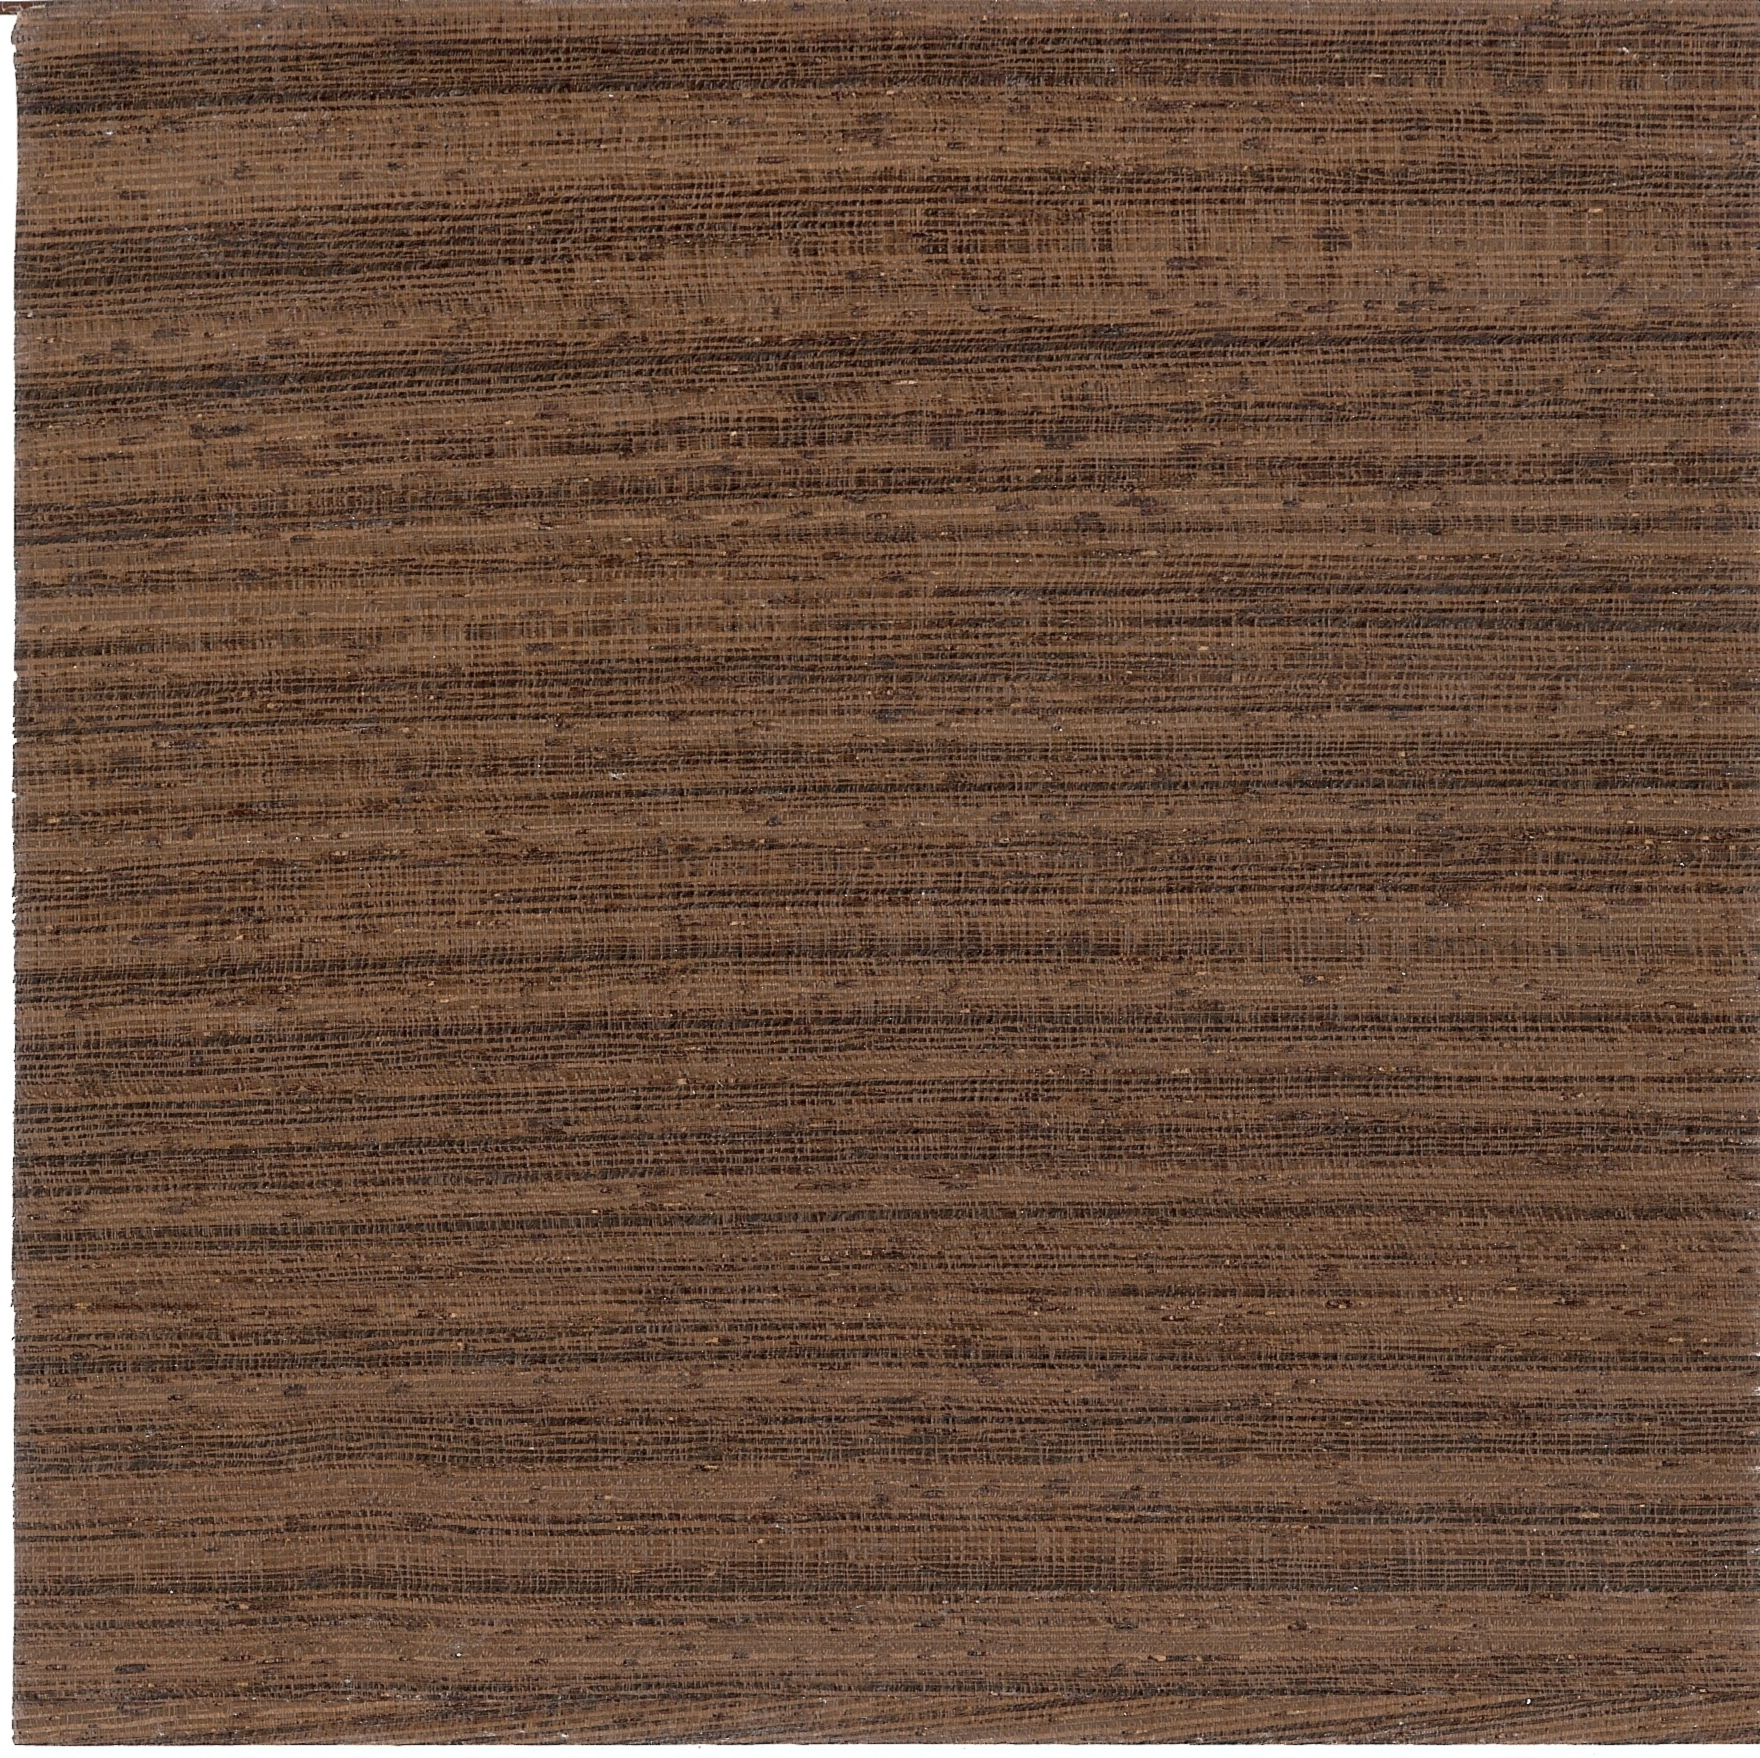 Marvelous photograph of FireRetardantBoard RedOa..(0.47MB) FireRetardantBoard Maple..(0.34MB  with #4D372A color and 1760x1758 pixels